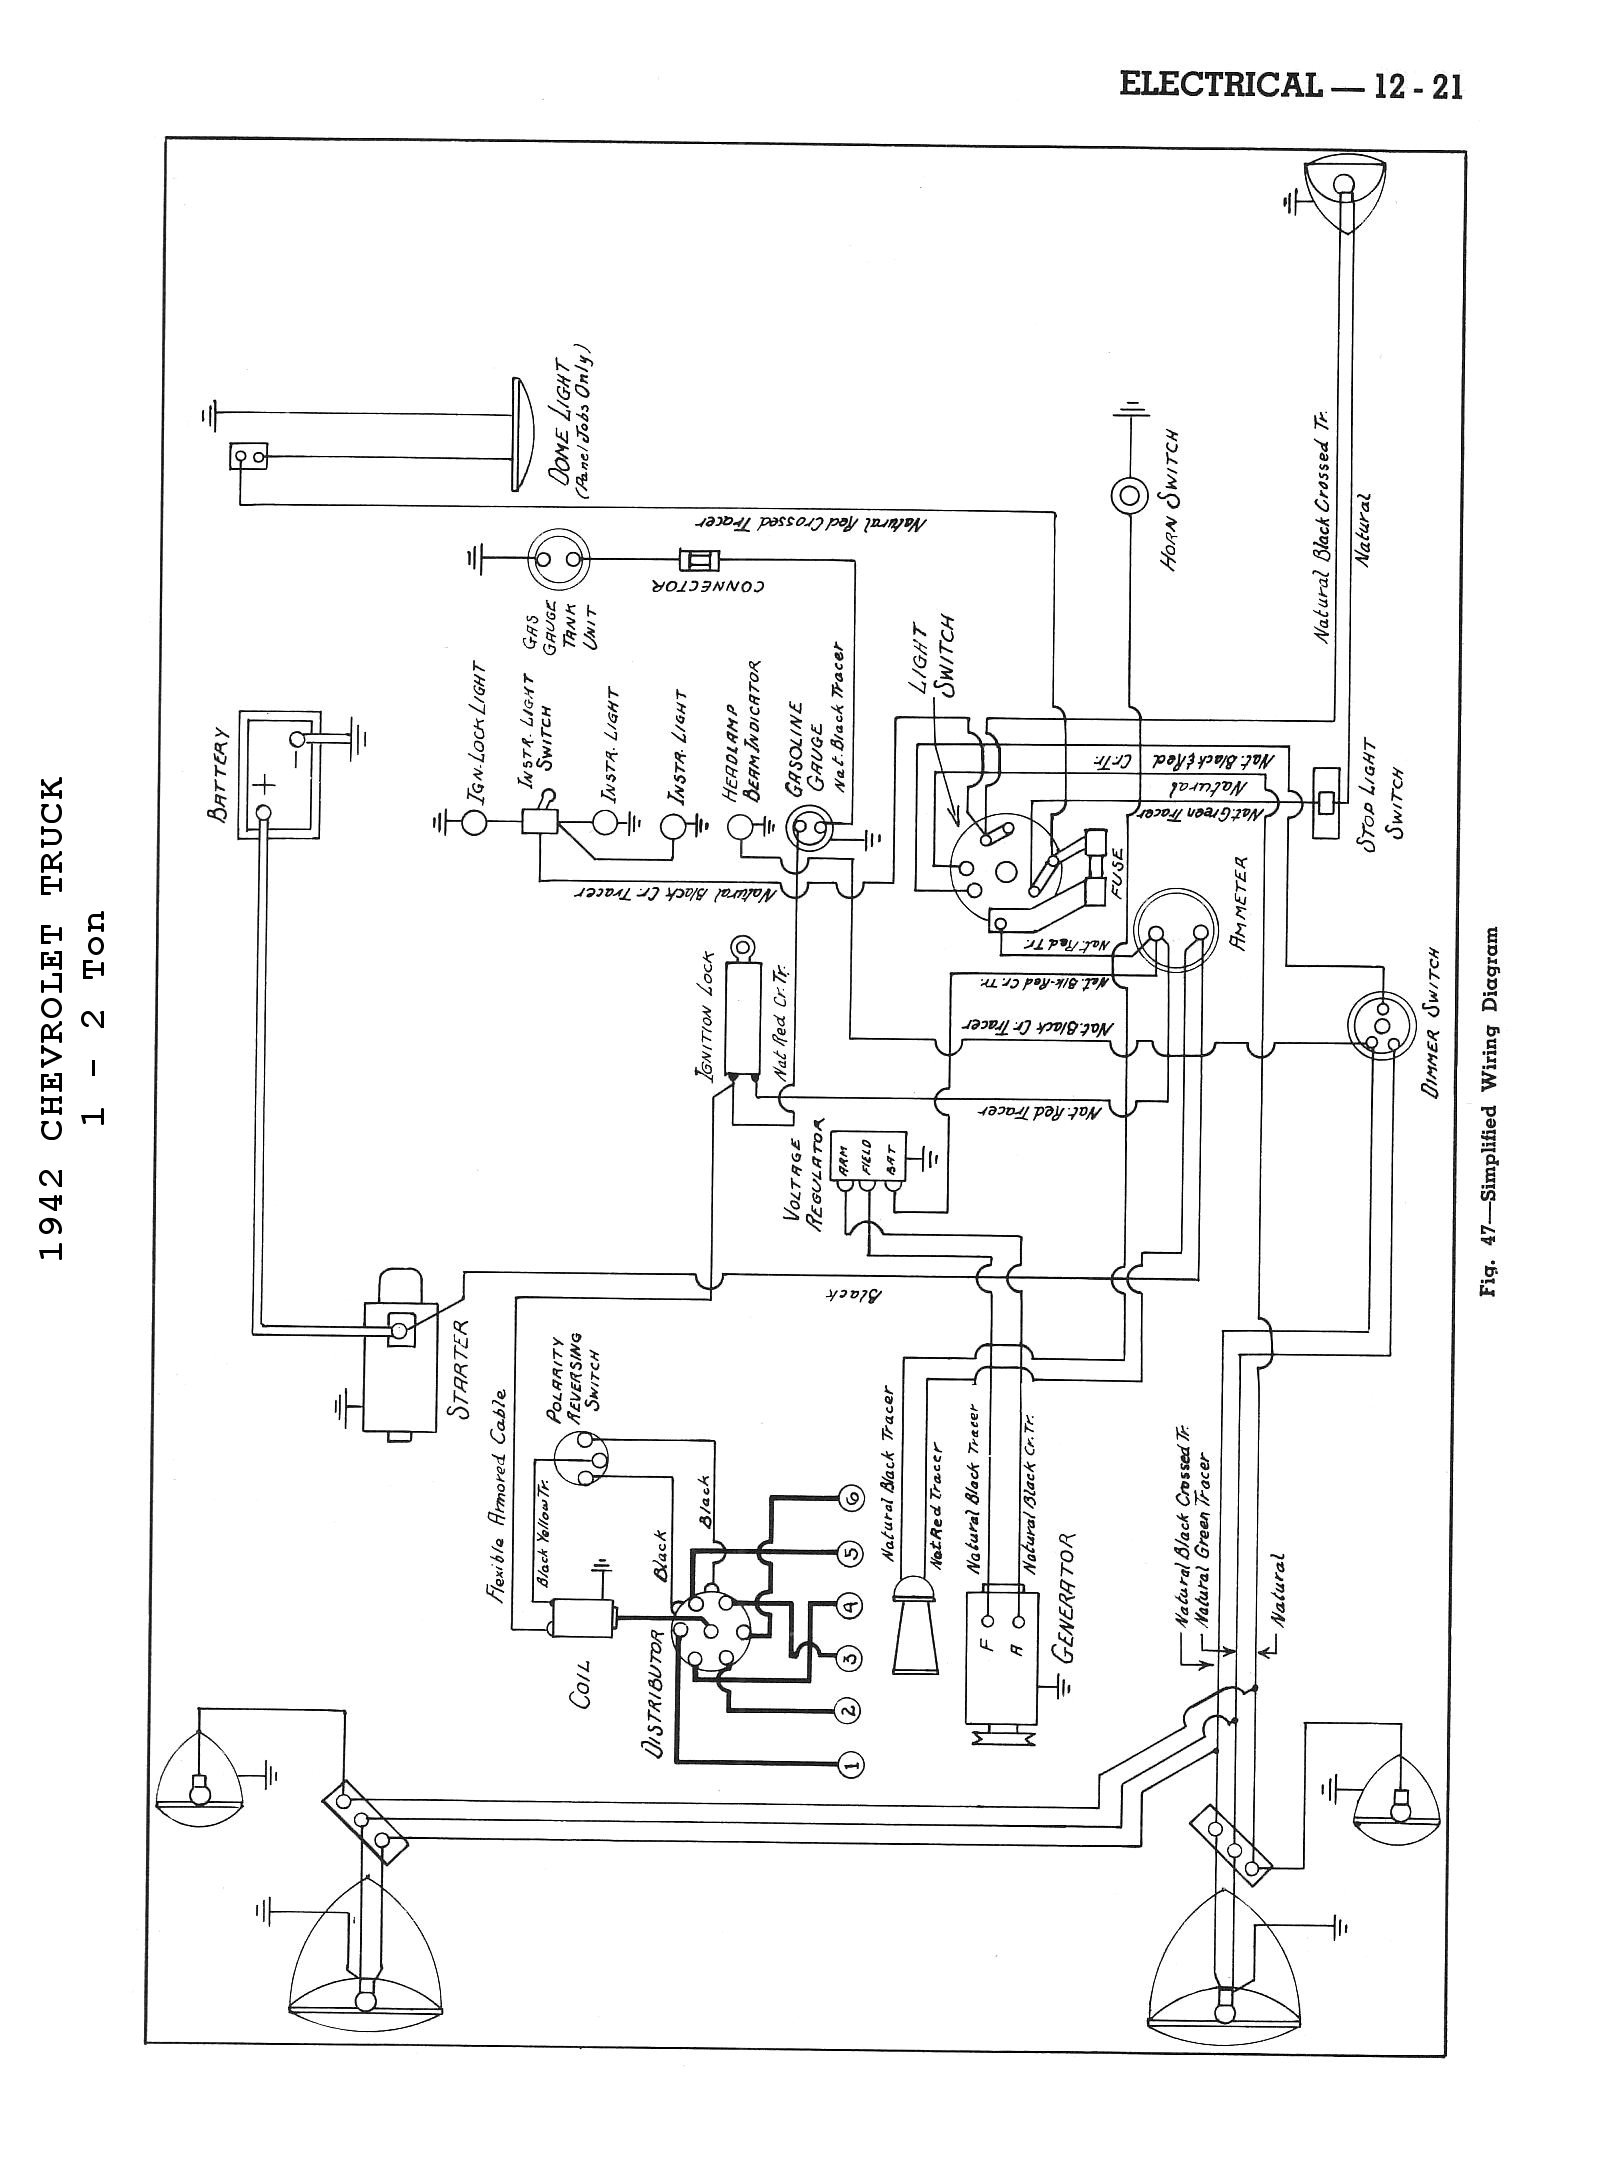 1942 dodge wiring diagram wiring diagrams rh boltsoft net 2007 dodge ram turn signal wiring diagram 2007 dodge ram turn signal wiring diagram